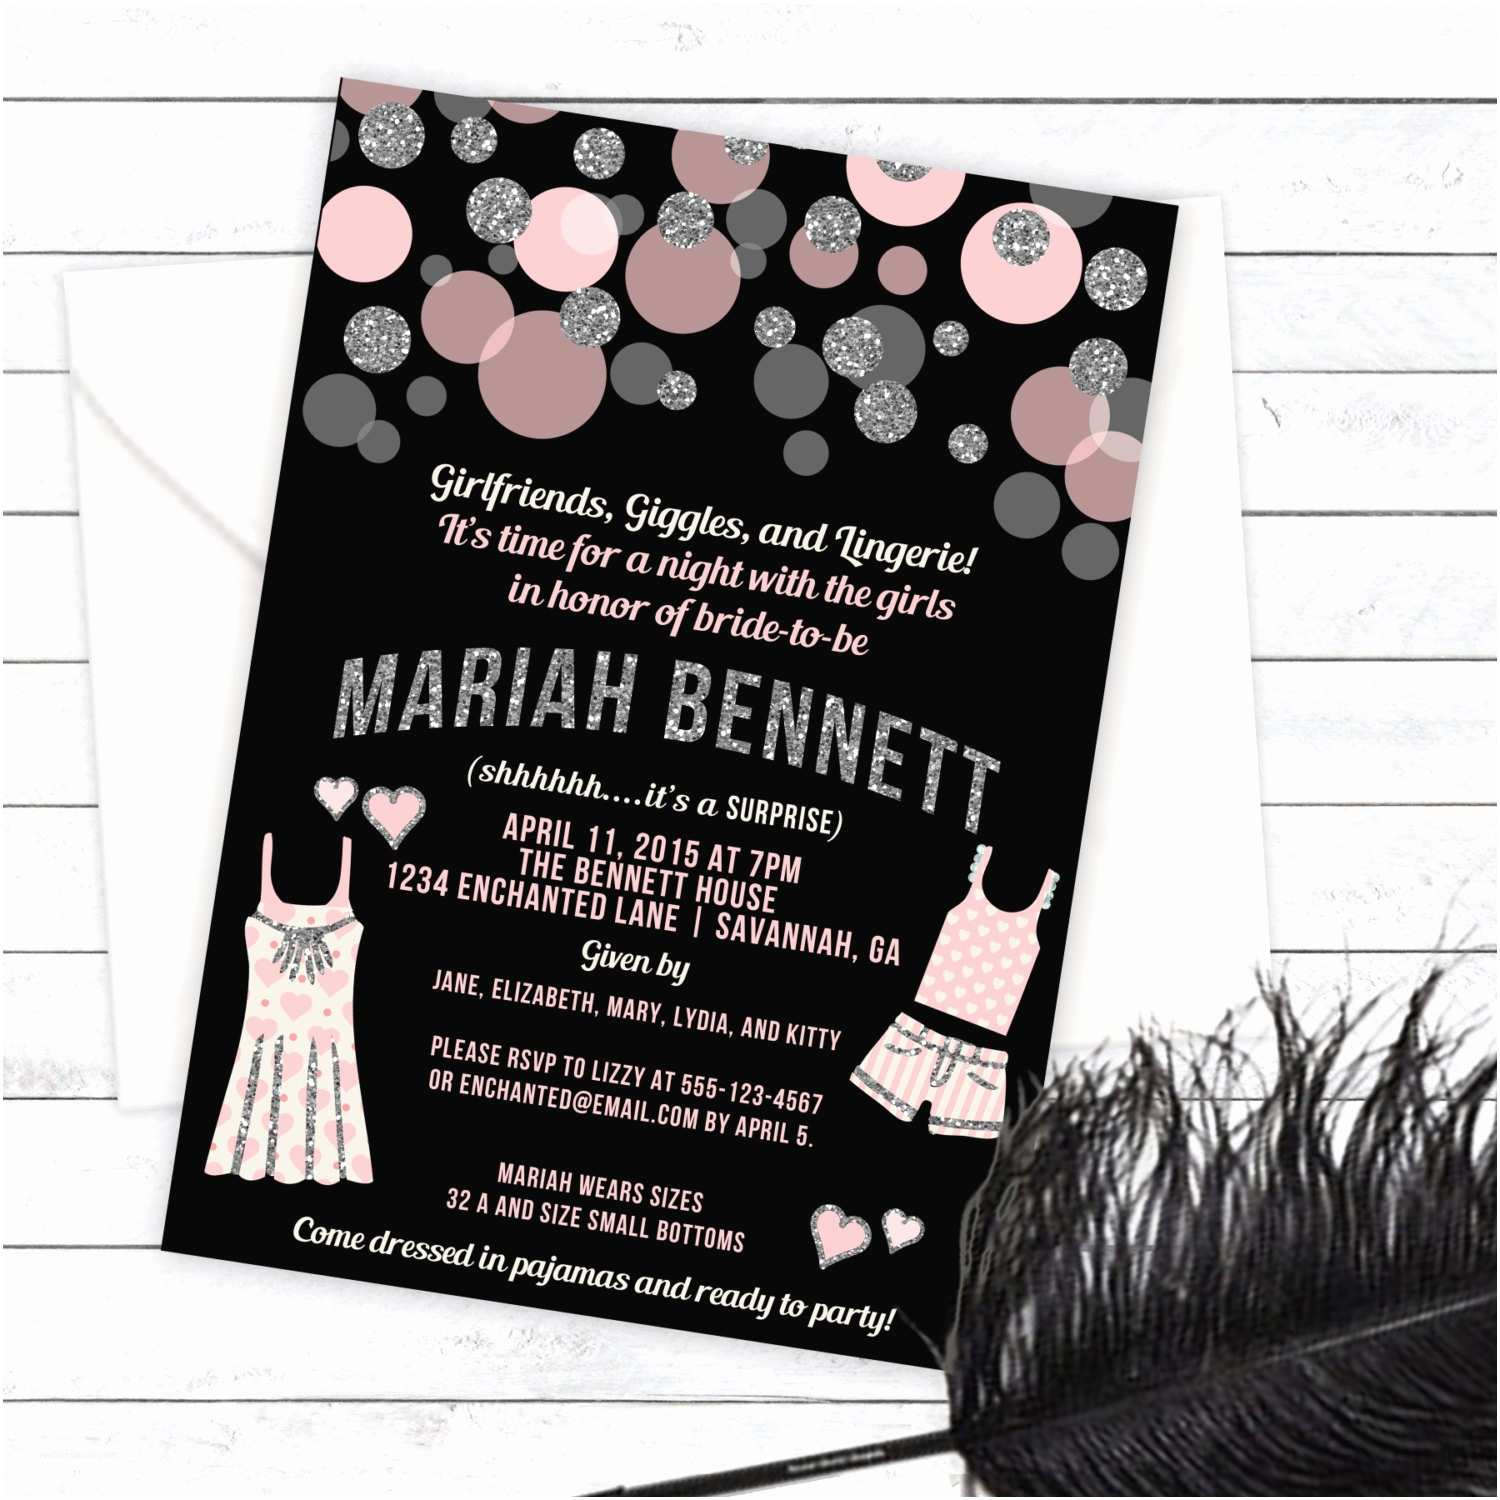 Lingerie Party Invitations Pajama Party Lingerie Party Invitation Pj Party Linger